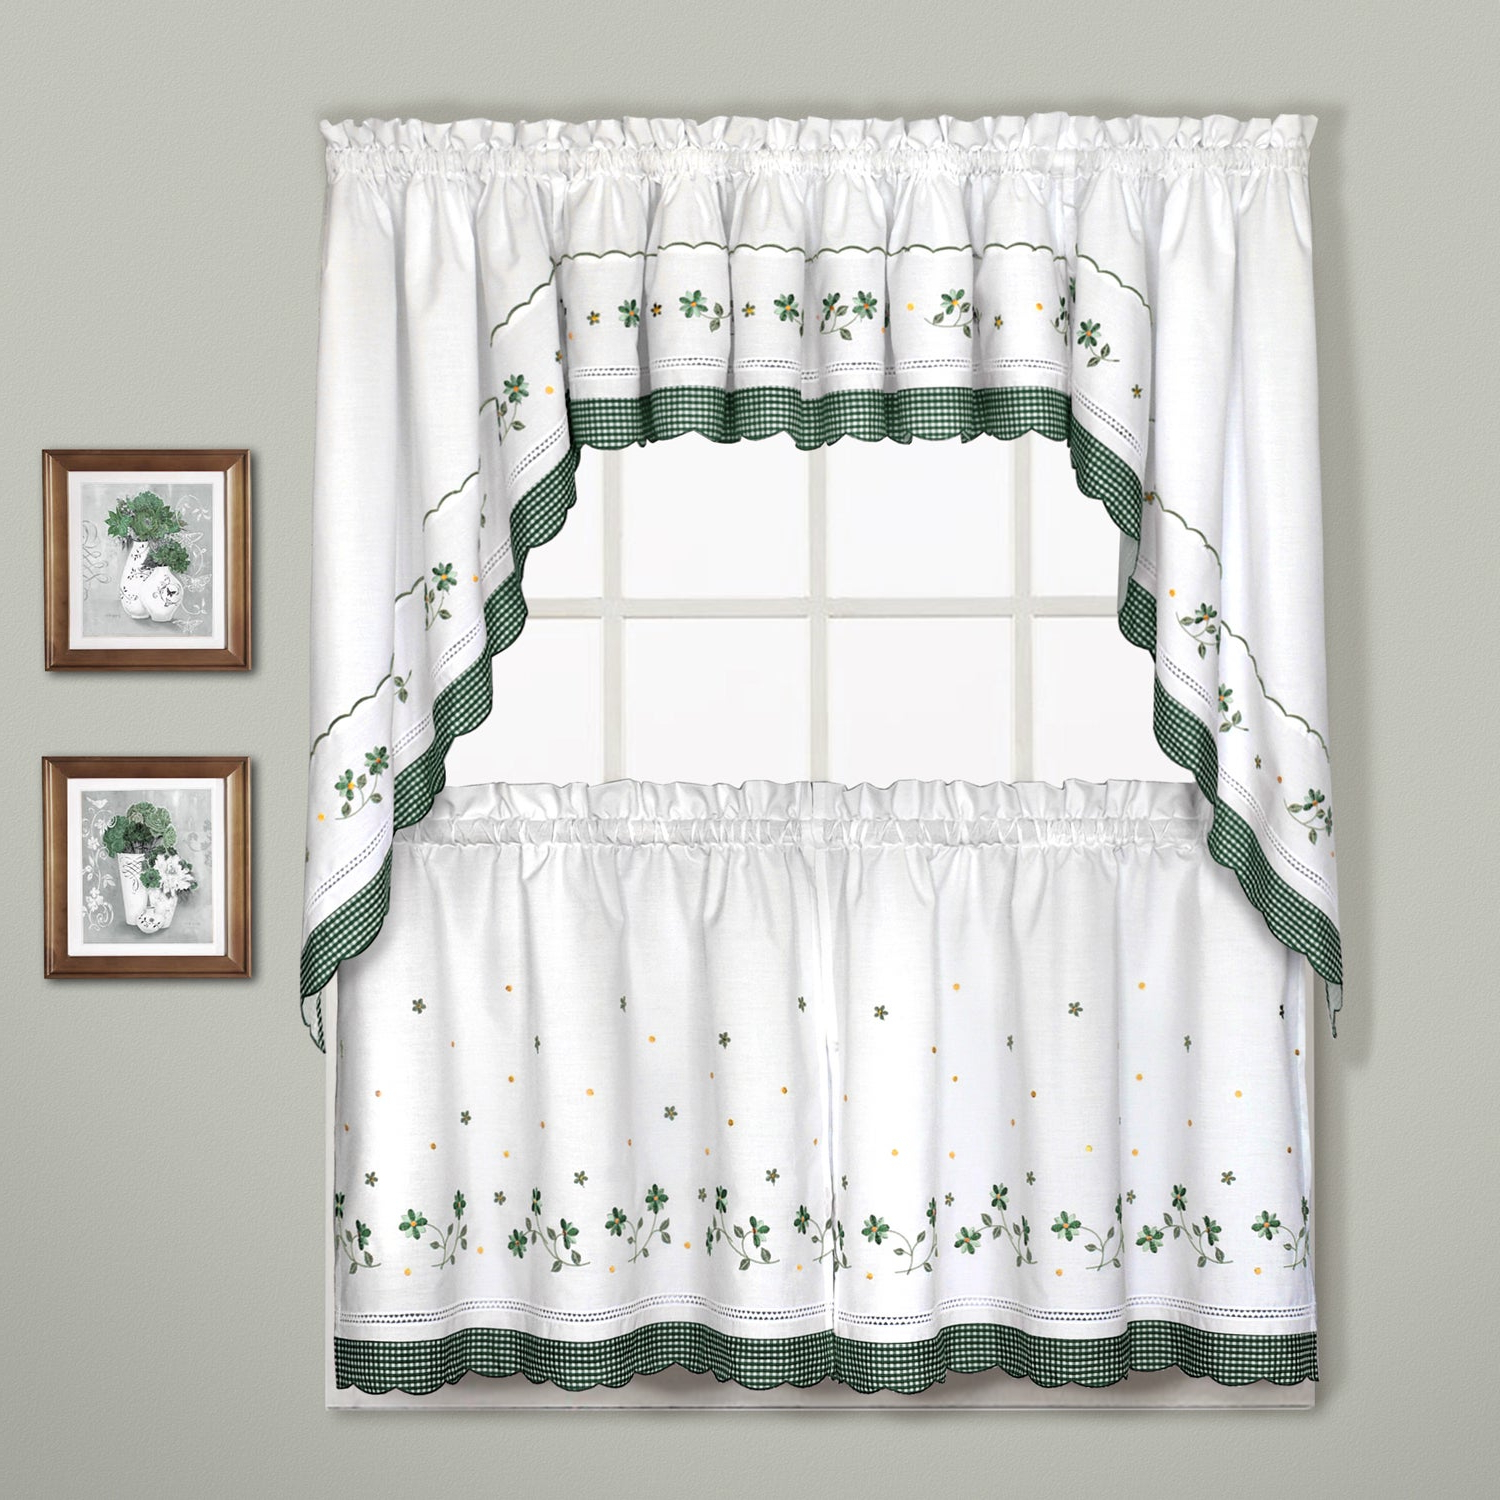 Best And Newest Luxury Collection Gingham Light Filtering Straight Valance For Floral Lace Rod Pocket Kitchen Curtain Valance And Tiers Sets (View 16 of 20)